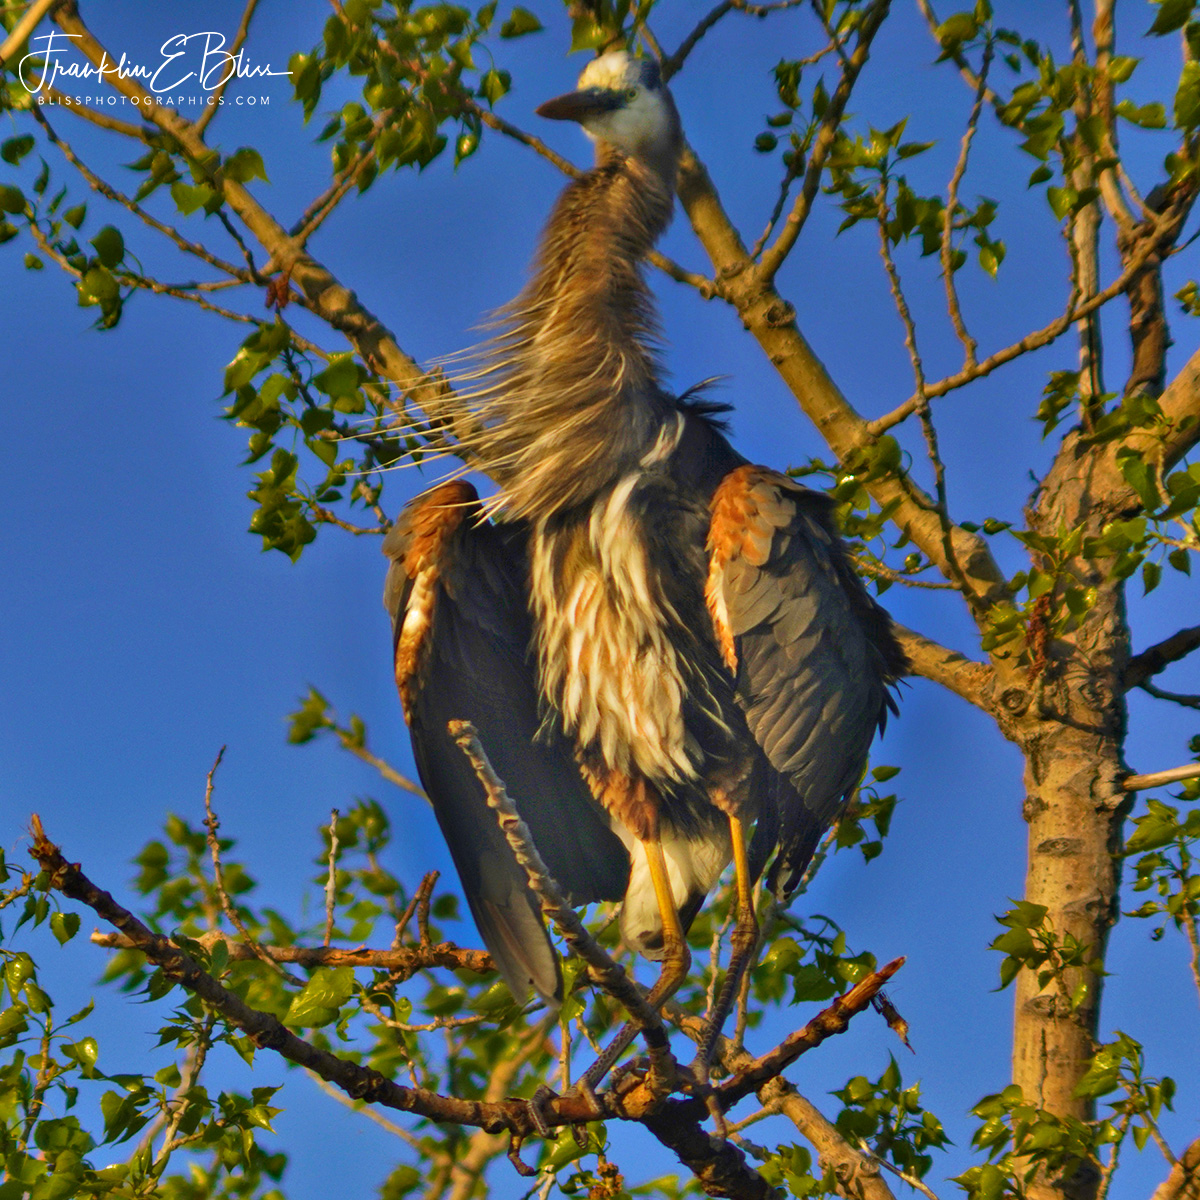 Great Blue Heron 50 Feet Up a CottonWood Tree: Breezy